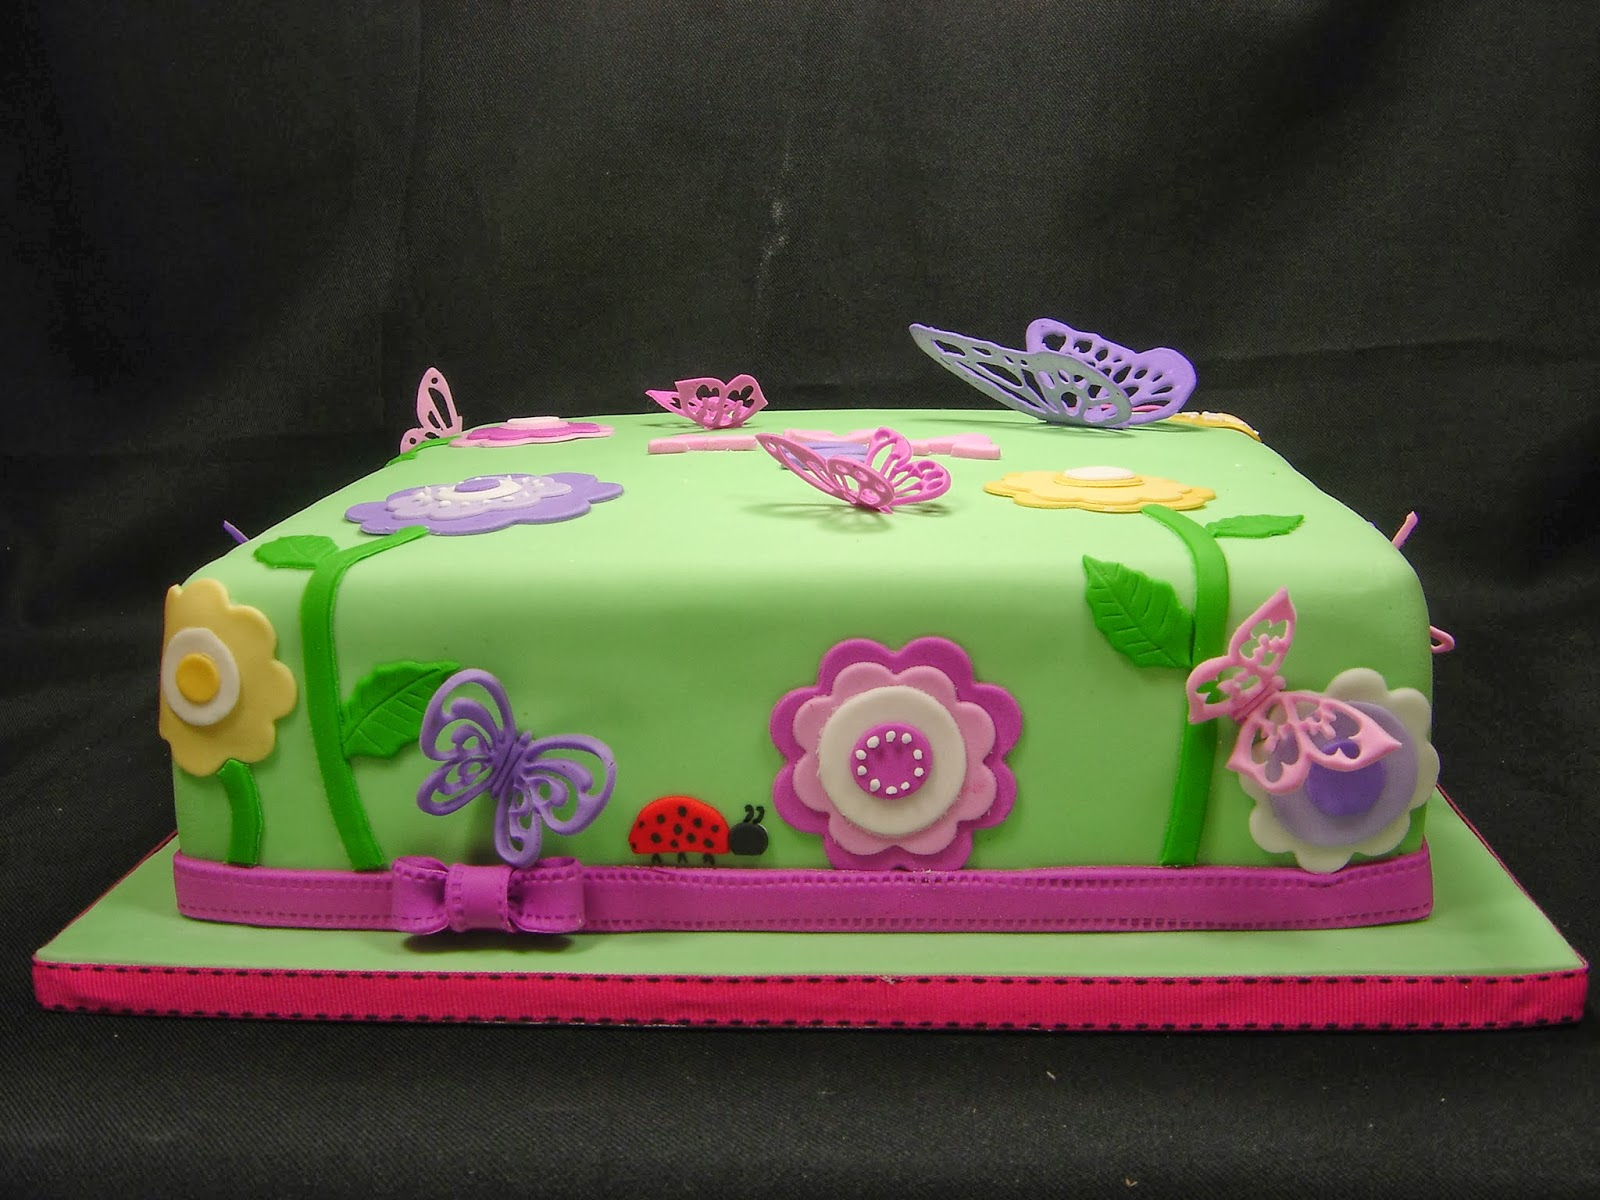 Cake Decorated With Flowers And Butterflies : Cake till u drop: Flower and Butterfly cake